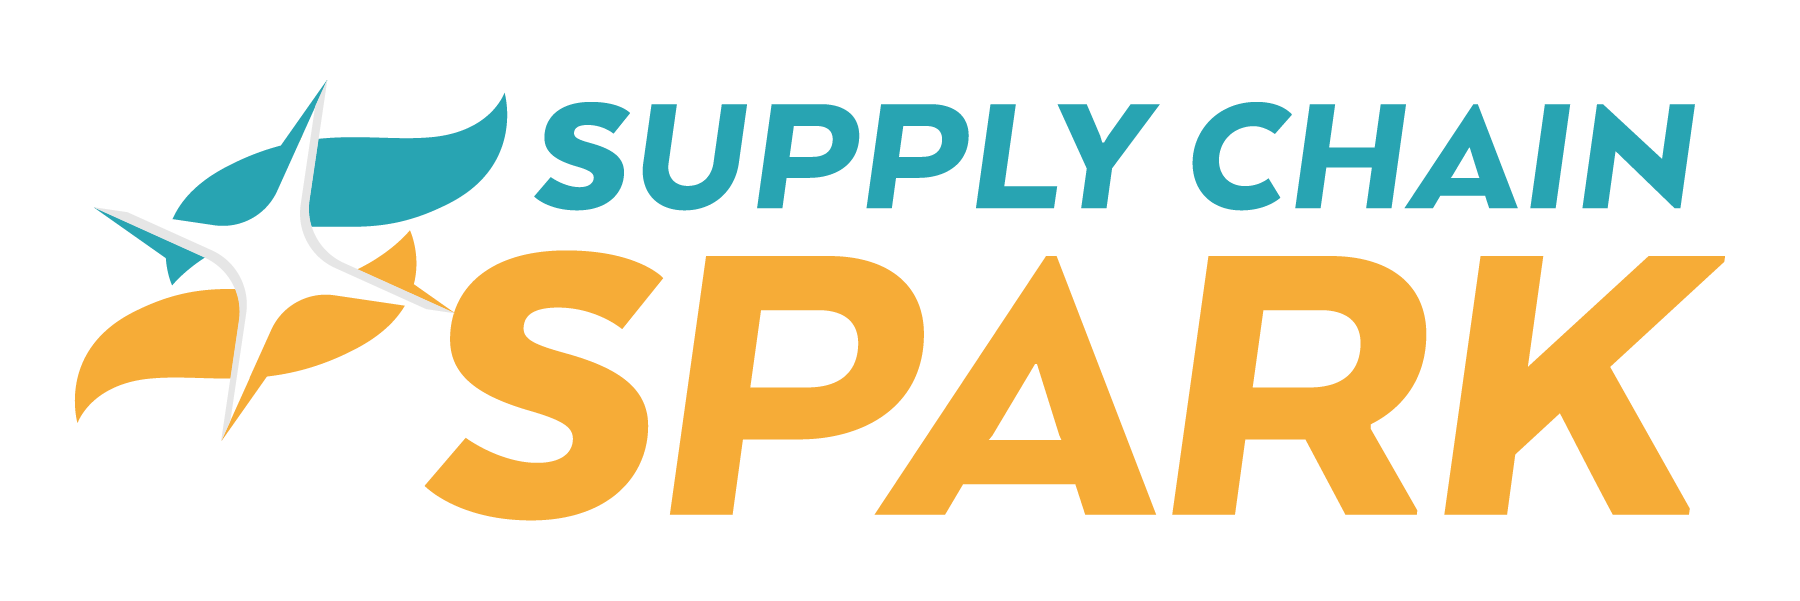 Supply Chain Spark